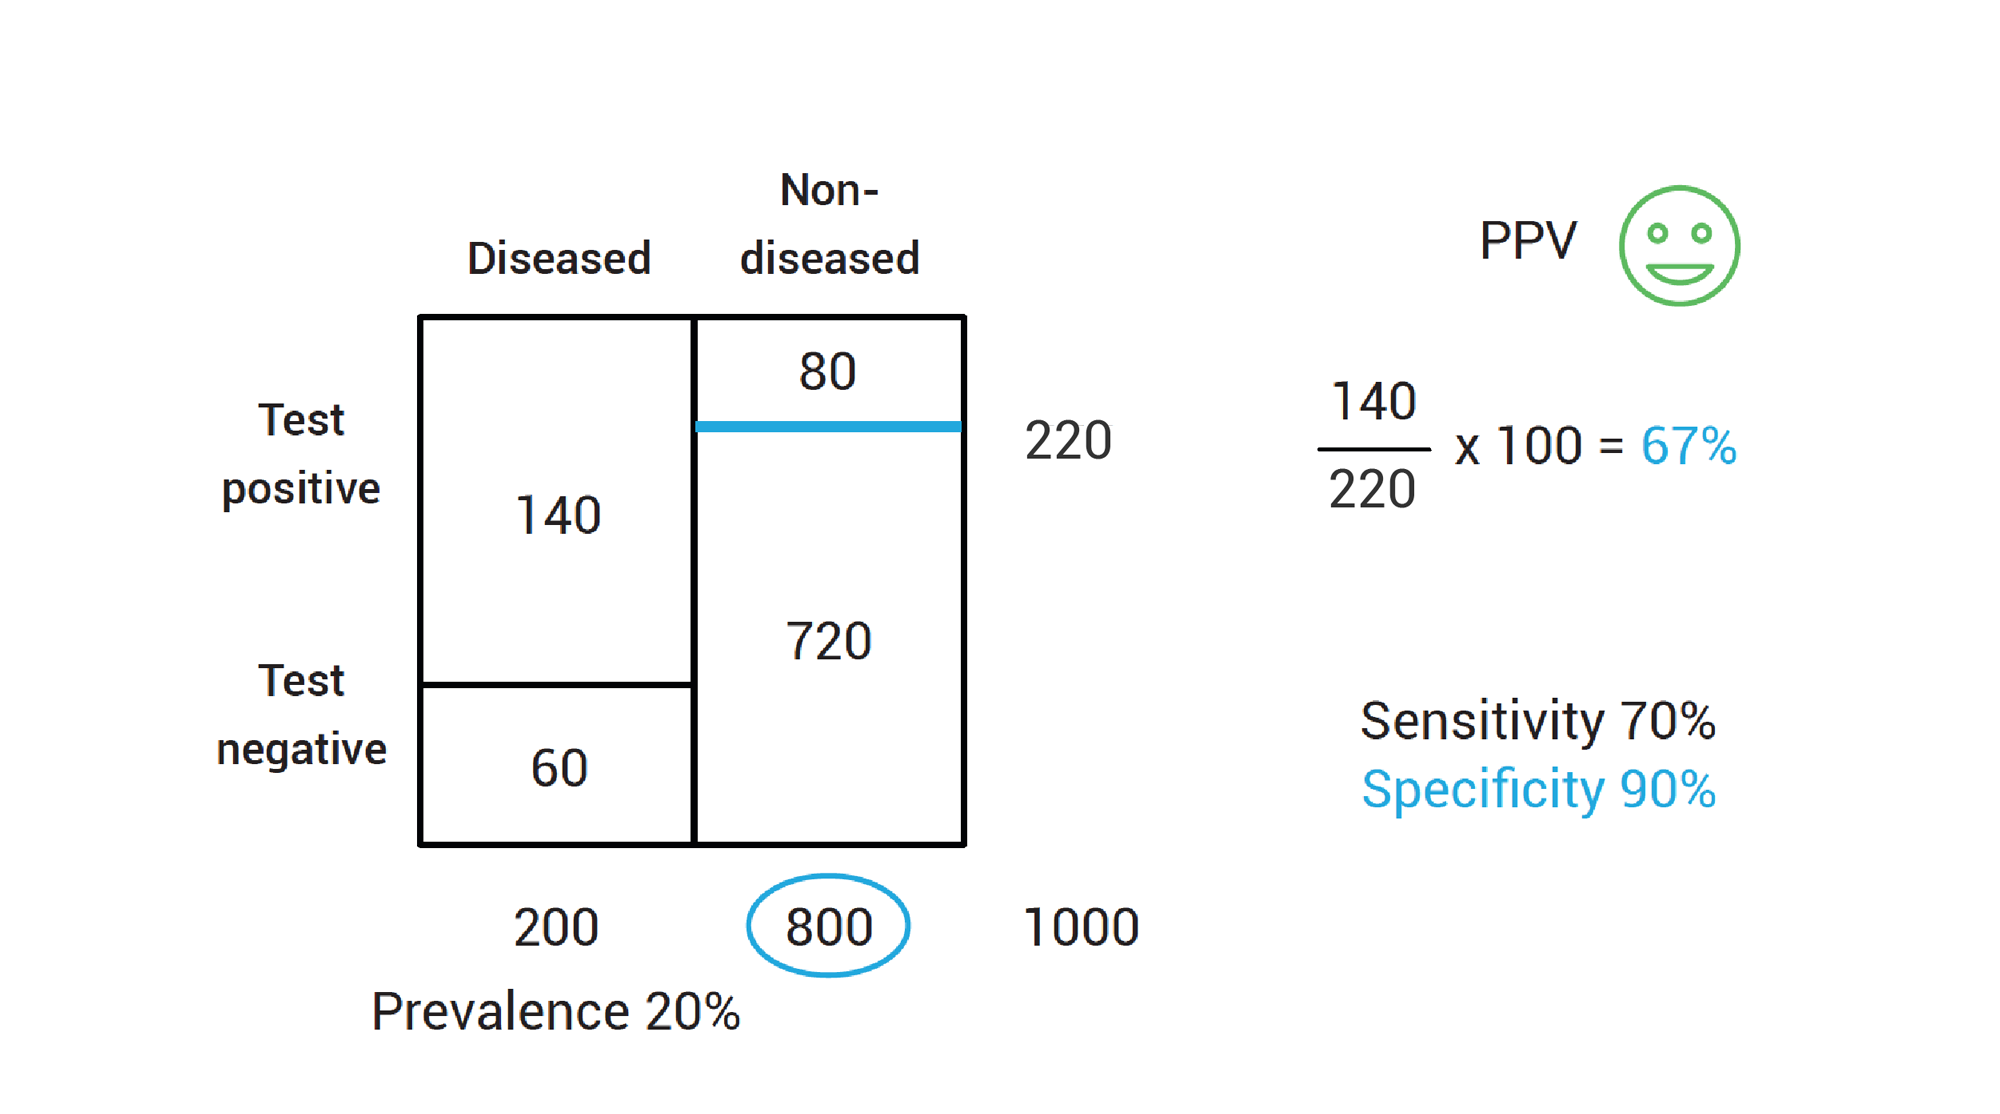 Calculating positive predictive value with low disease prevalence using a test with high specificity.